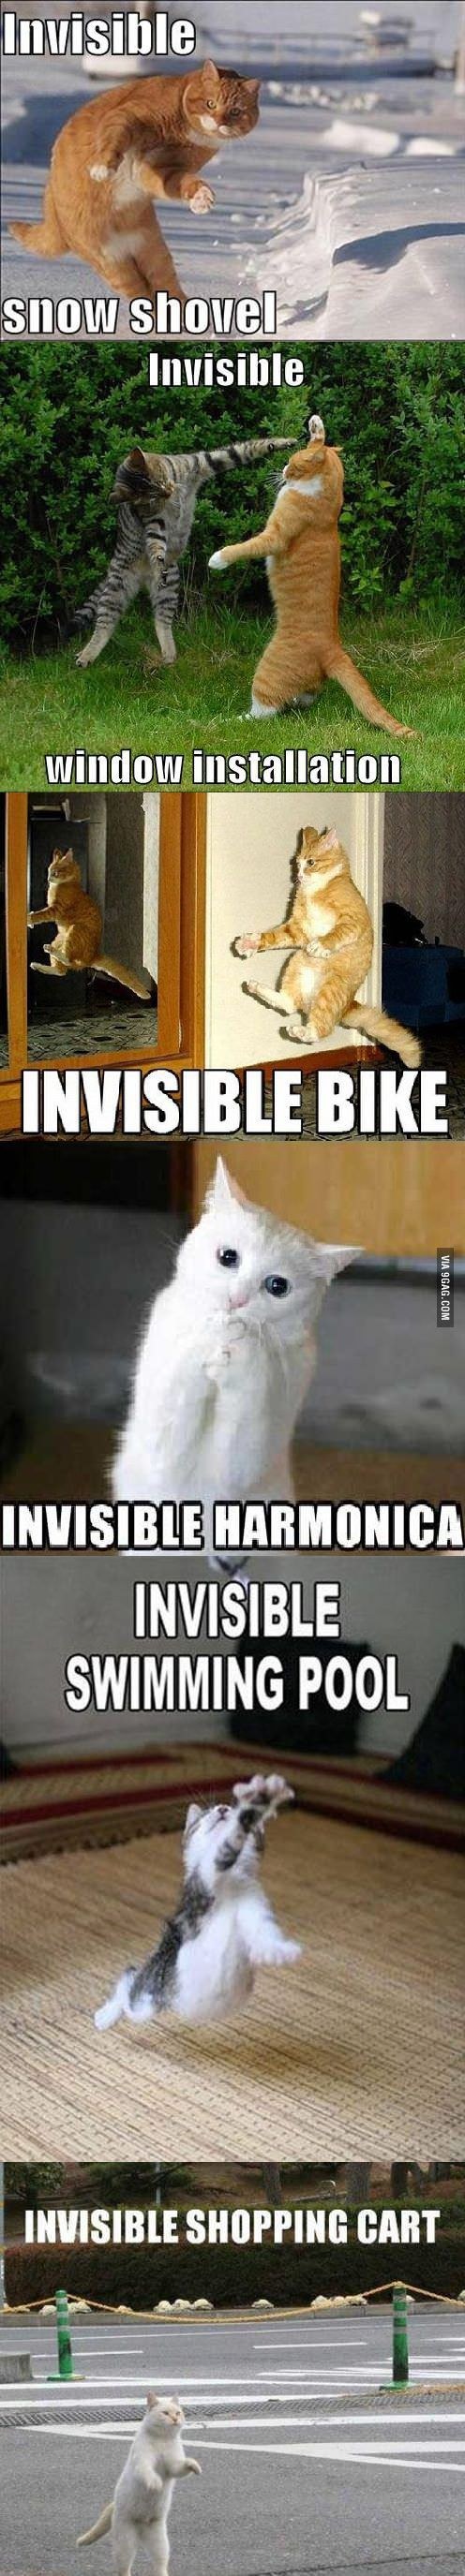 Invisible stuff and cats... Laughed waaaayyy harder than I probably should have